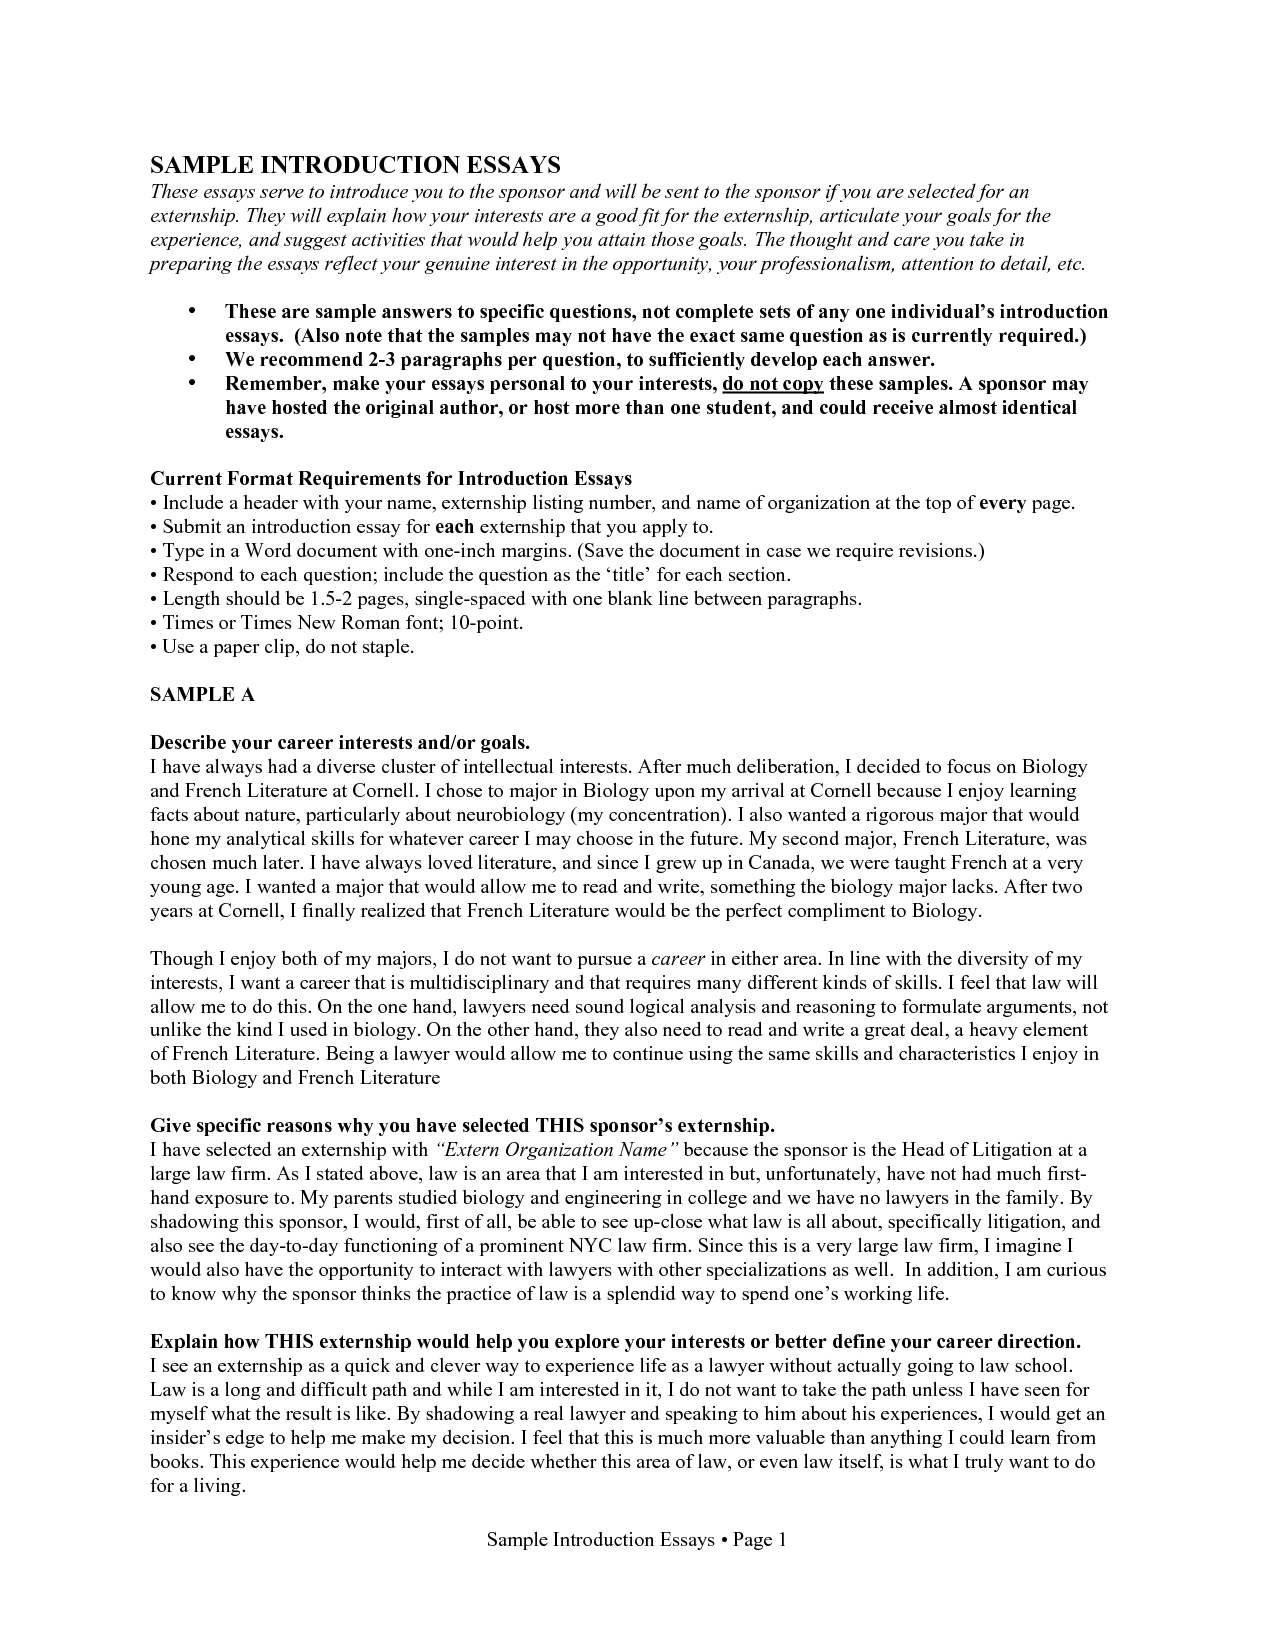 008 Introduction Self Essay About Your Discipline X Jpg How To Write An 8vvv9 Introduce Myself Writing Rare For Job Application Samples Full